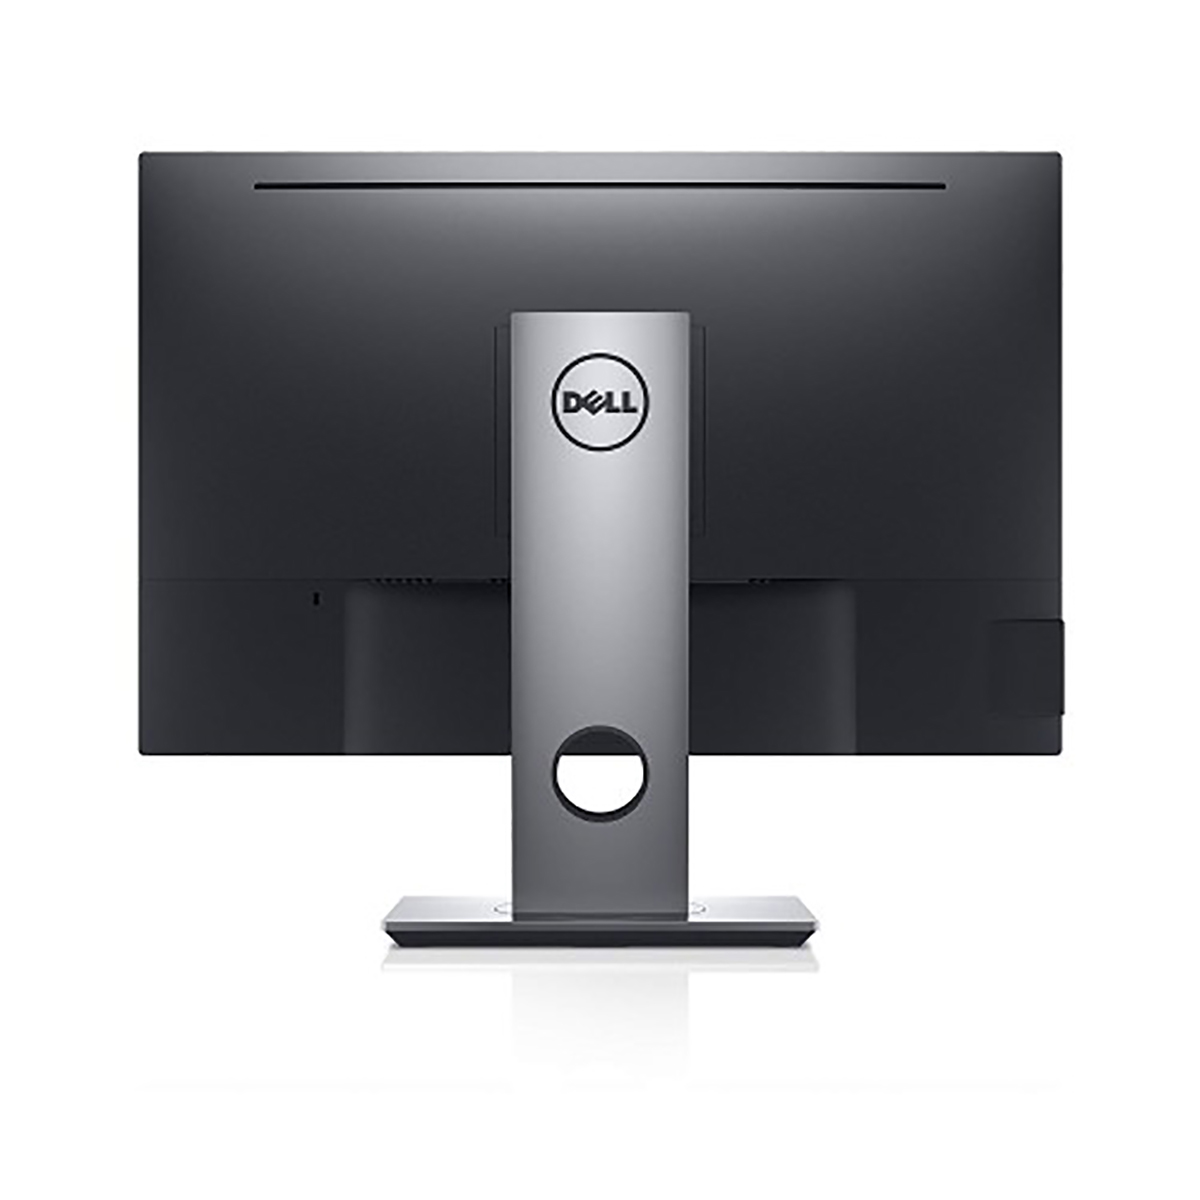 Dell P2418HZm 24 Inch Full HD IPS Monitor for Video Conferencing